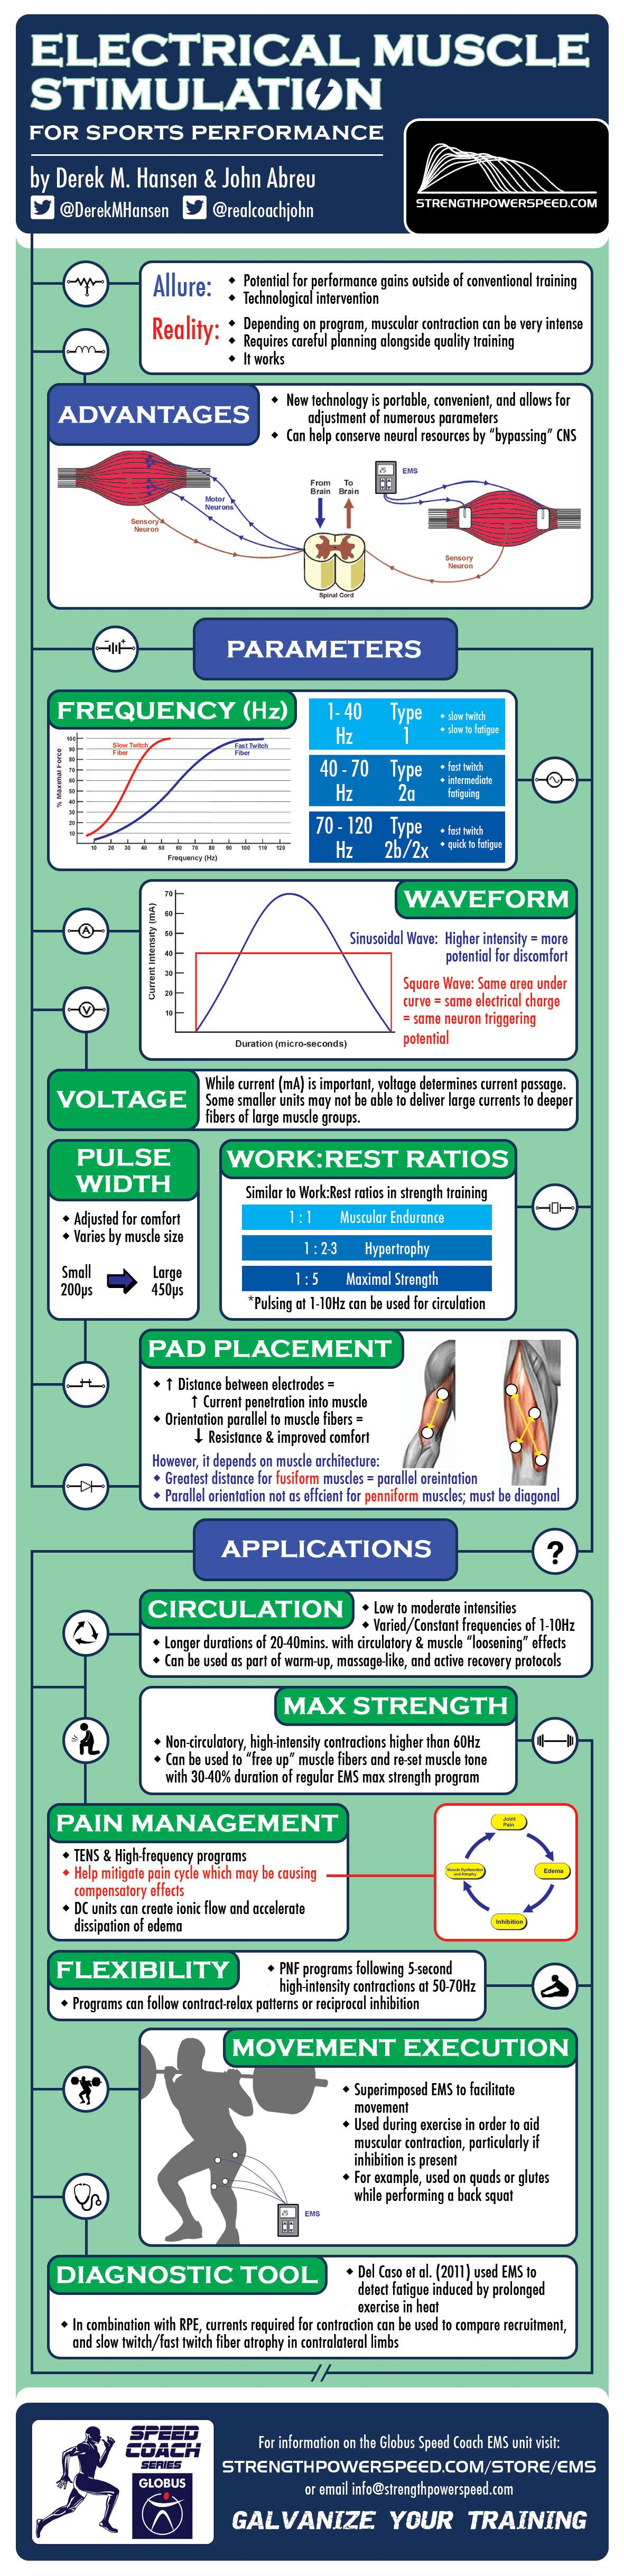 Infographic Electrical Muscle Stimulation